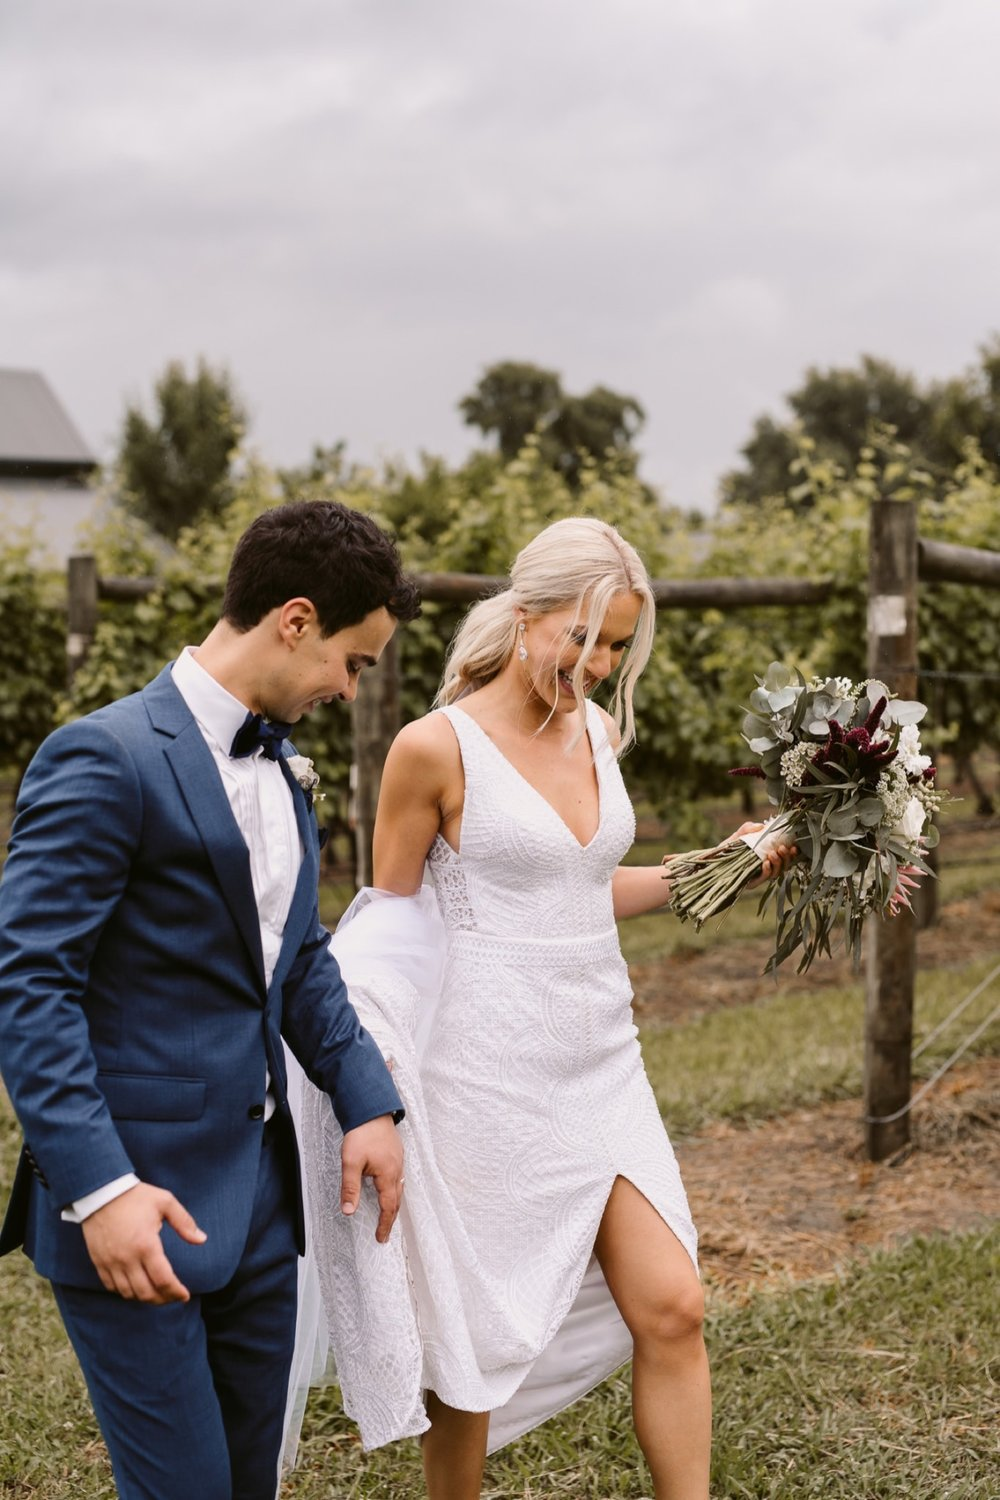 Immerse Yarra Valley Winery Wedding Photography72.jpg